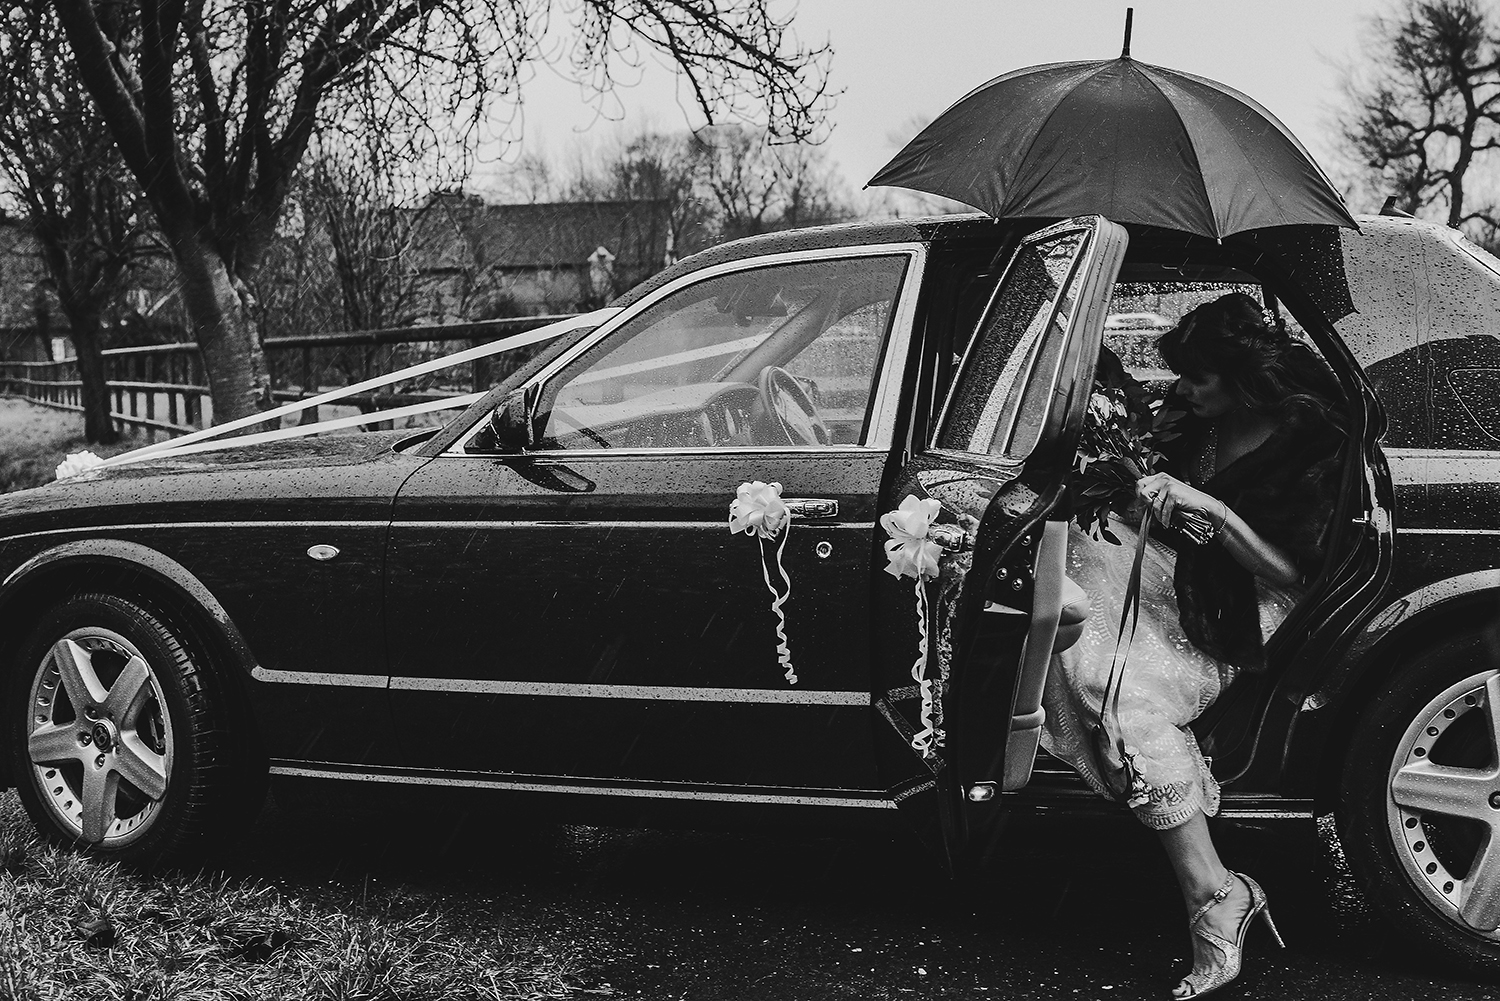 BW photo of the bride getting into the car under an umbrella